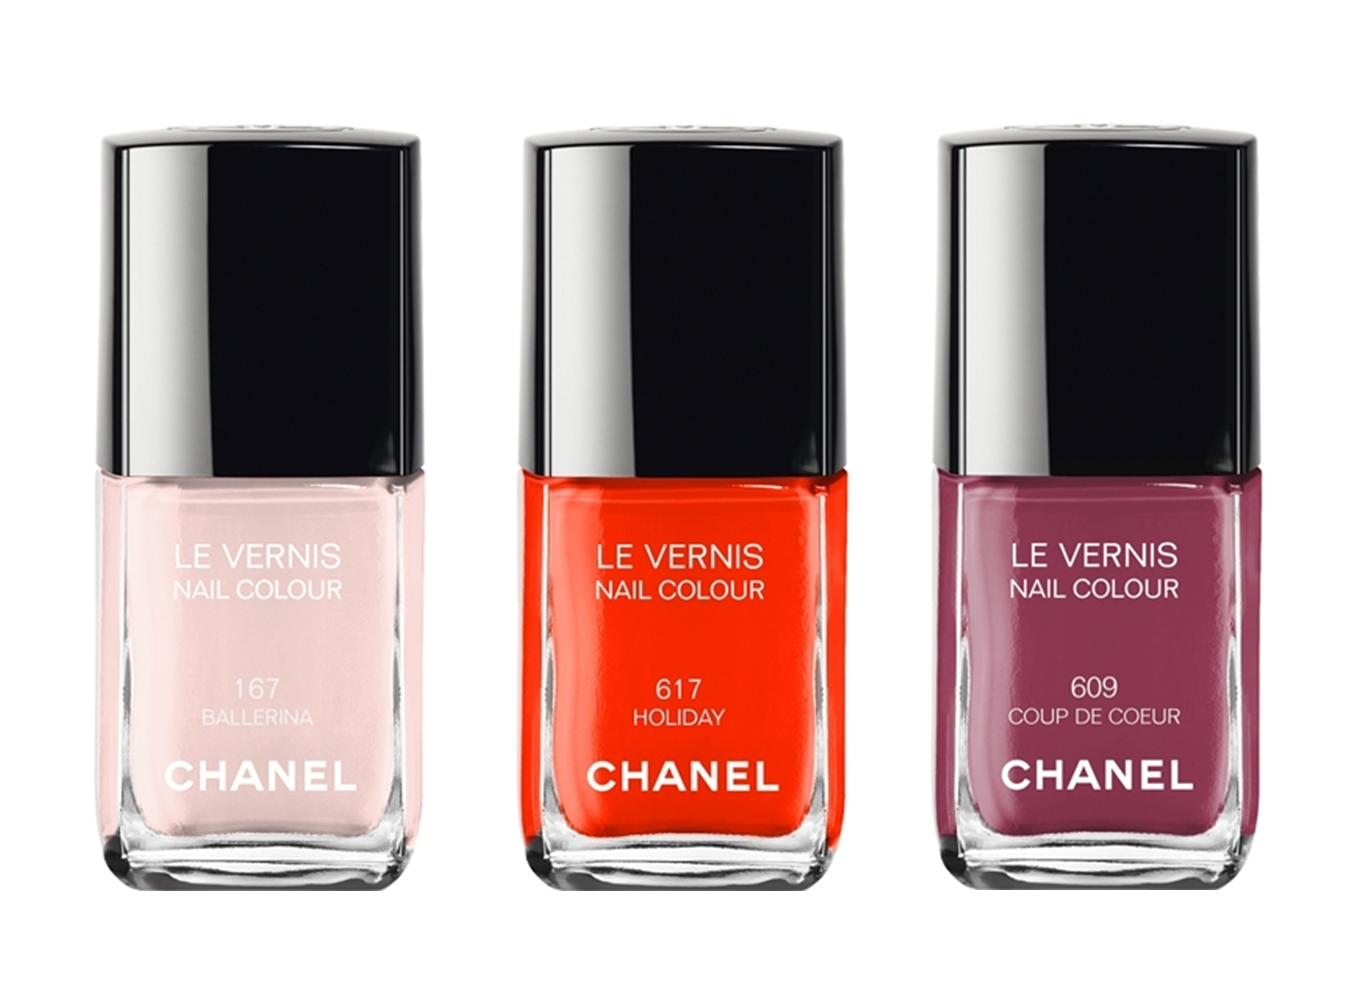 Chanel nail polish | The Painted Rogue